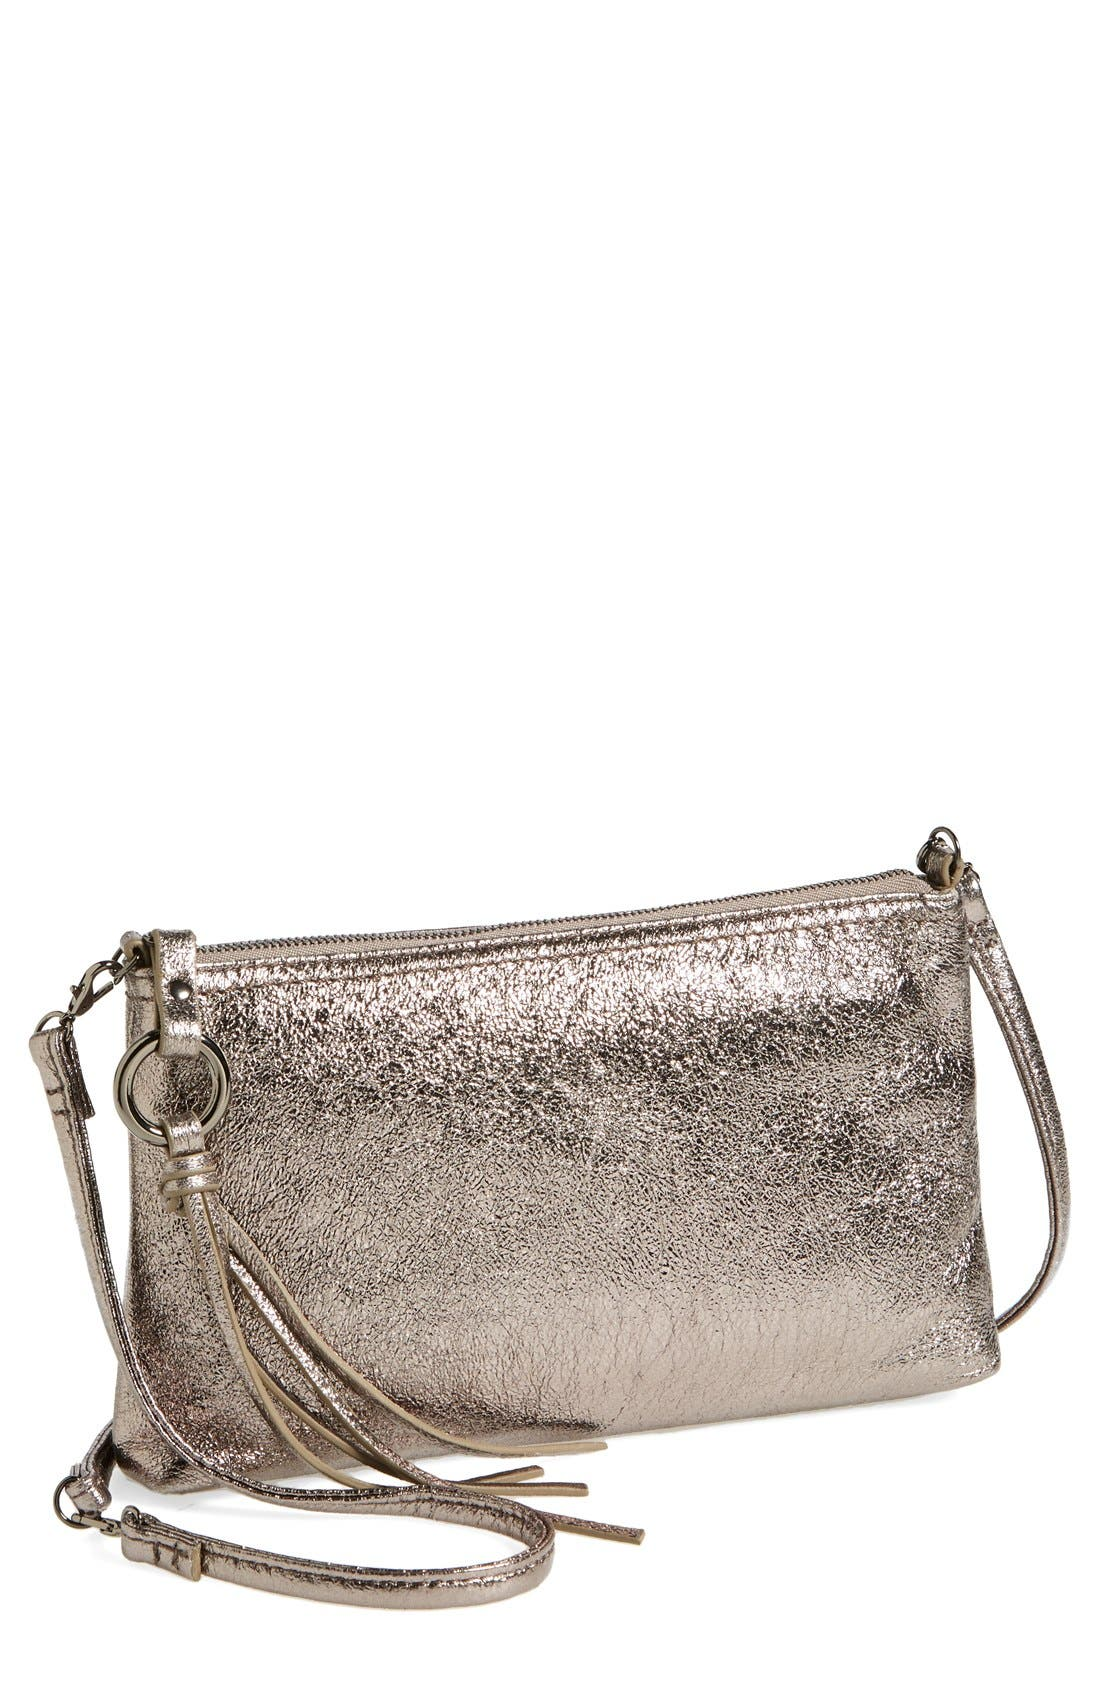 Main Image - Hobo 'Darcy' Leather Crossbody Bag